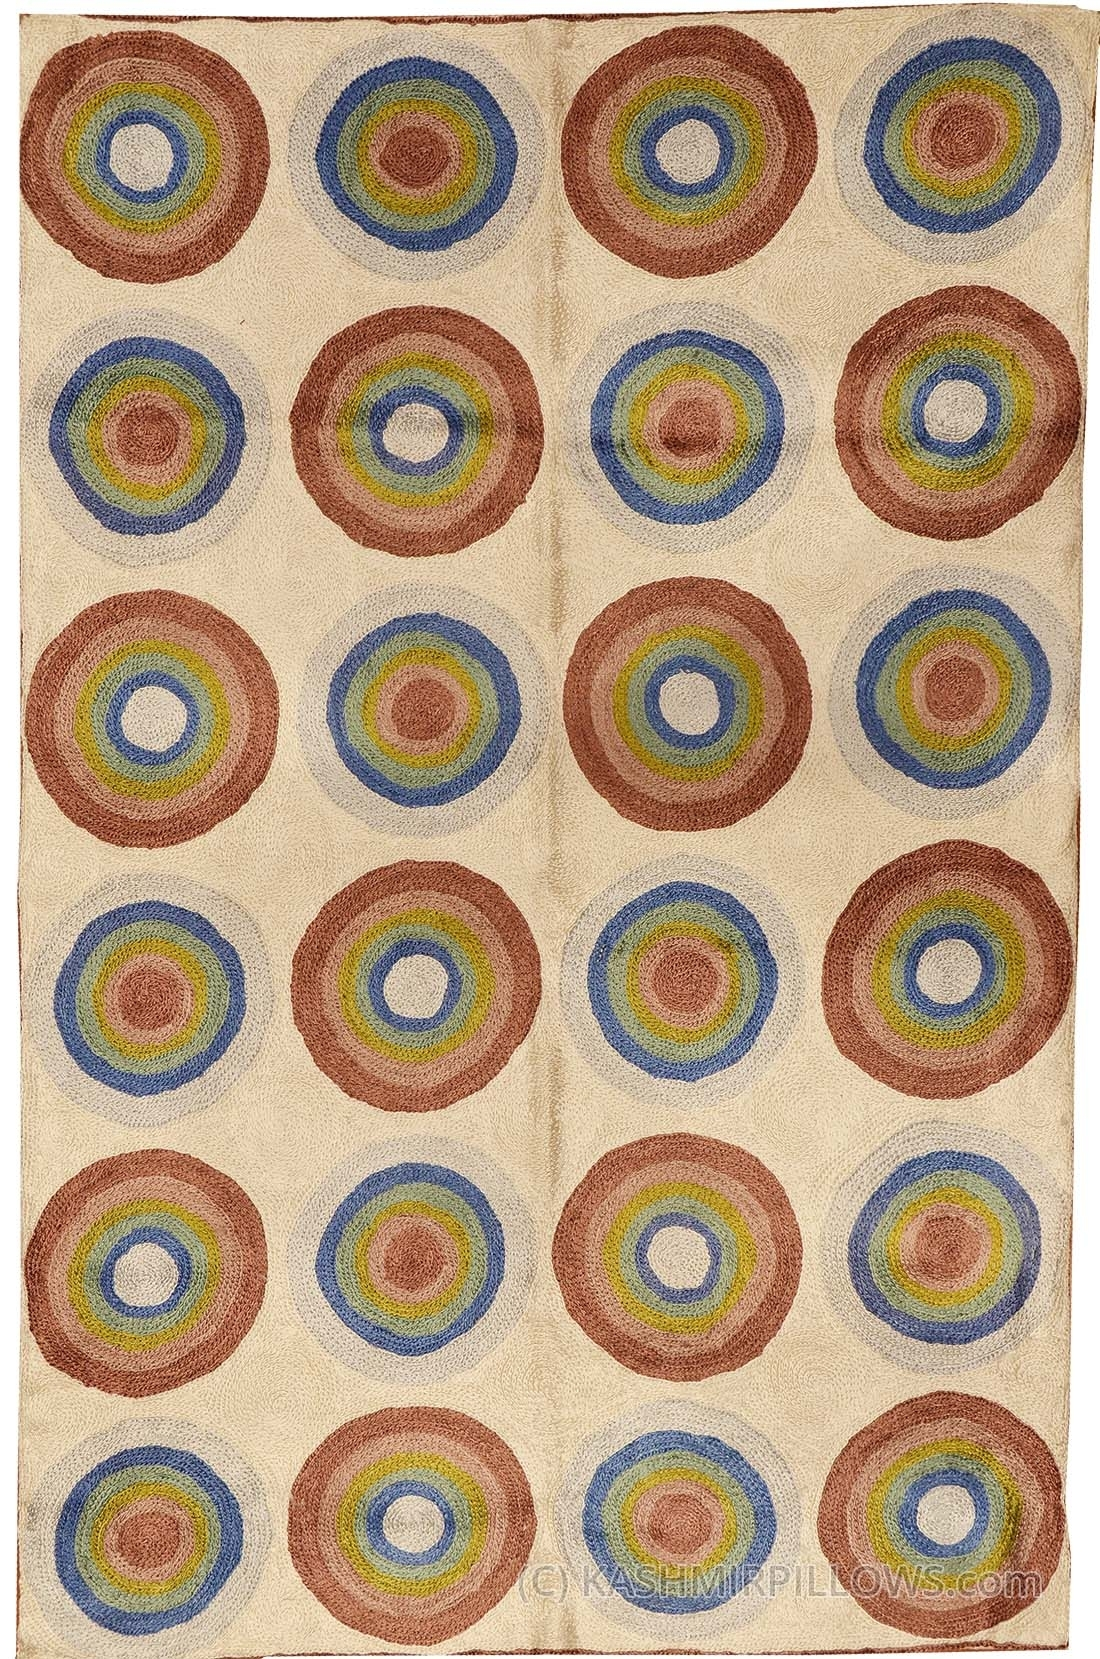 Kandinsky Circles Silk Rug / Wall Tapestry Hand Embroidered 2Ft X With Regard To Most Recent Abstract Circles Wall Art (Gallery 20 of 20)